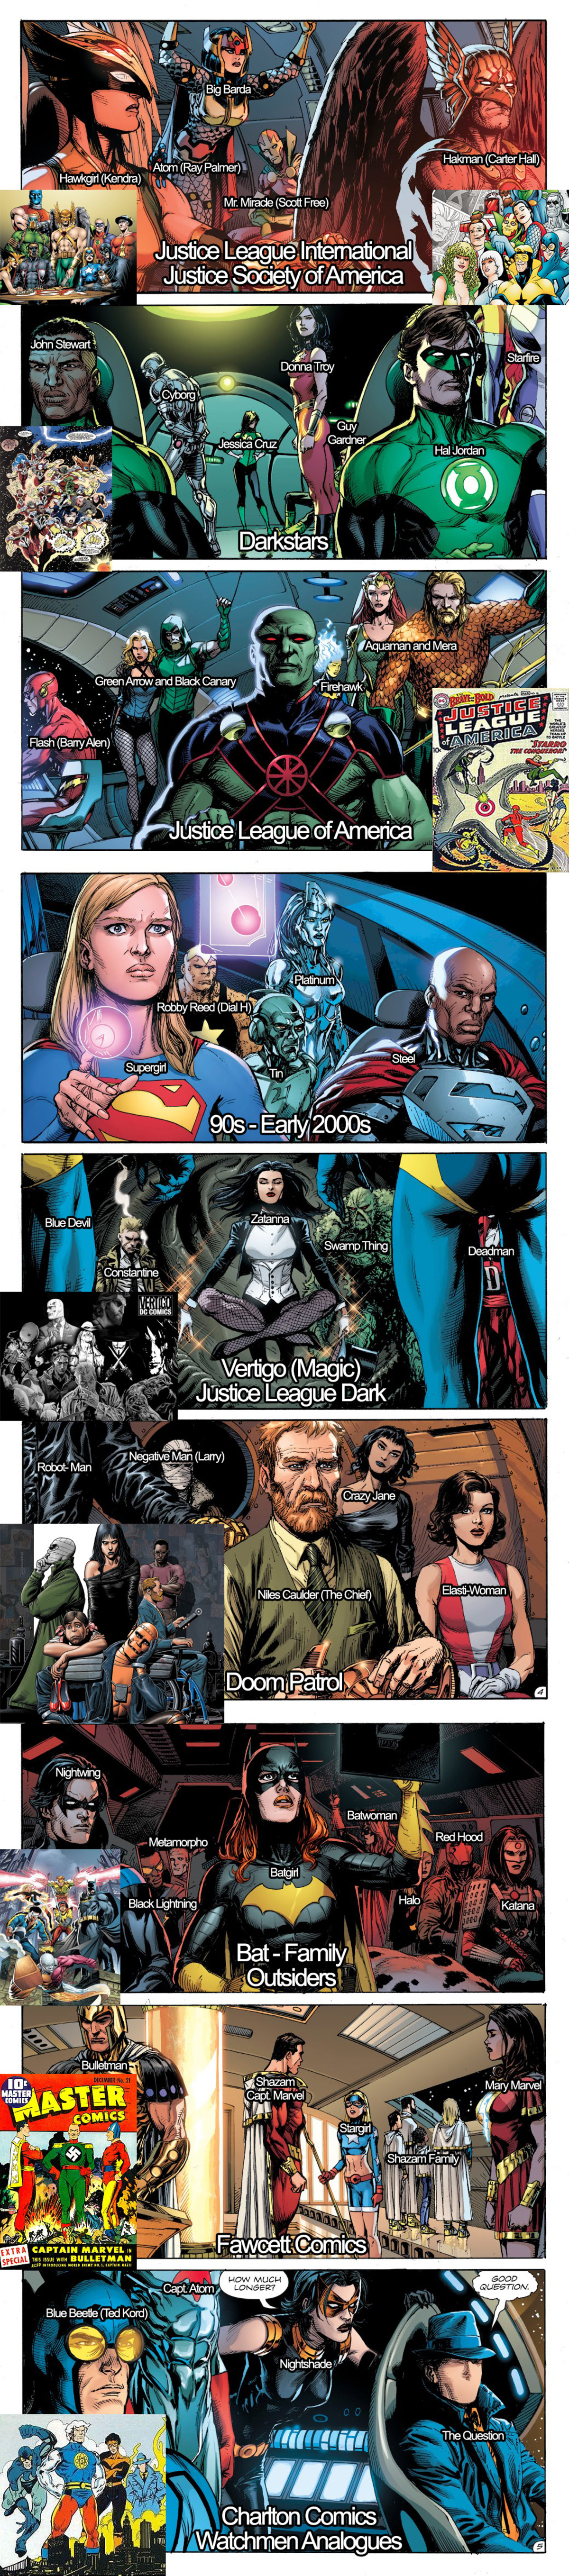 The easter eggs in Doomsday Clock 9. .. the only one I don't recognize is crazy jane. That's a whole lot of good characters that really don't get enough light outside their original comics.